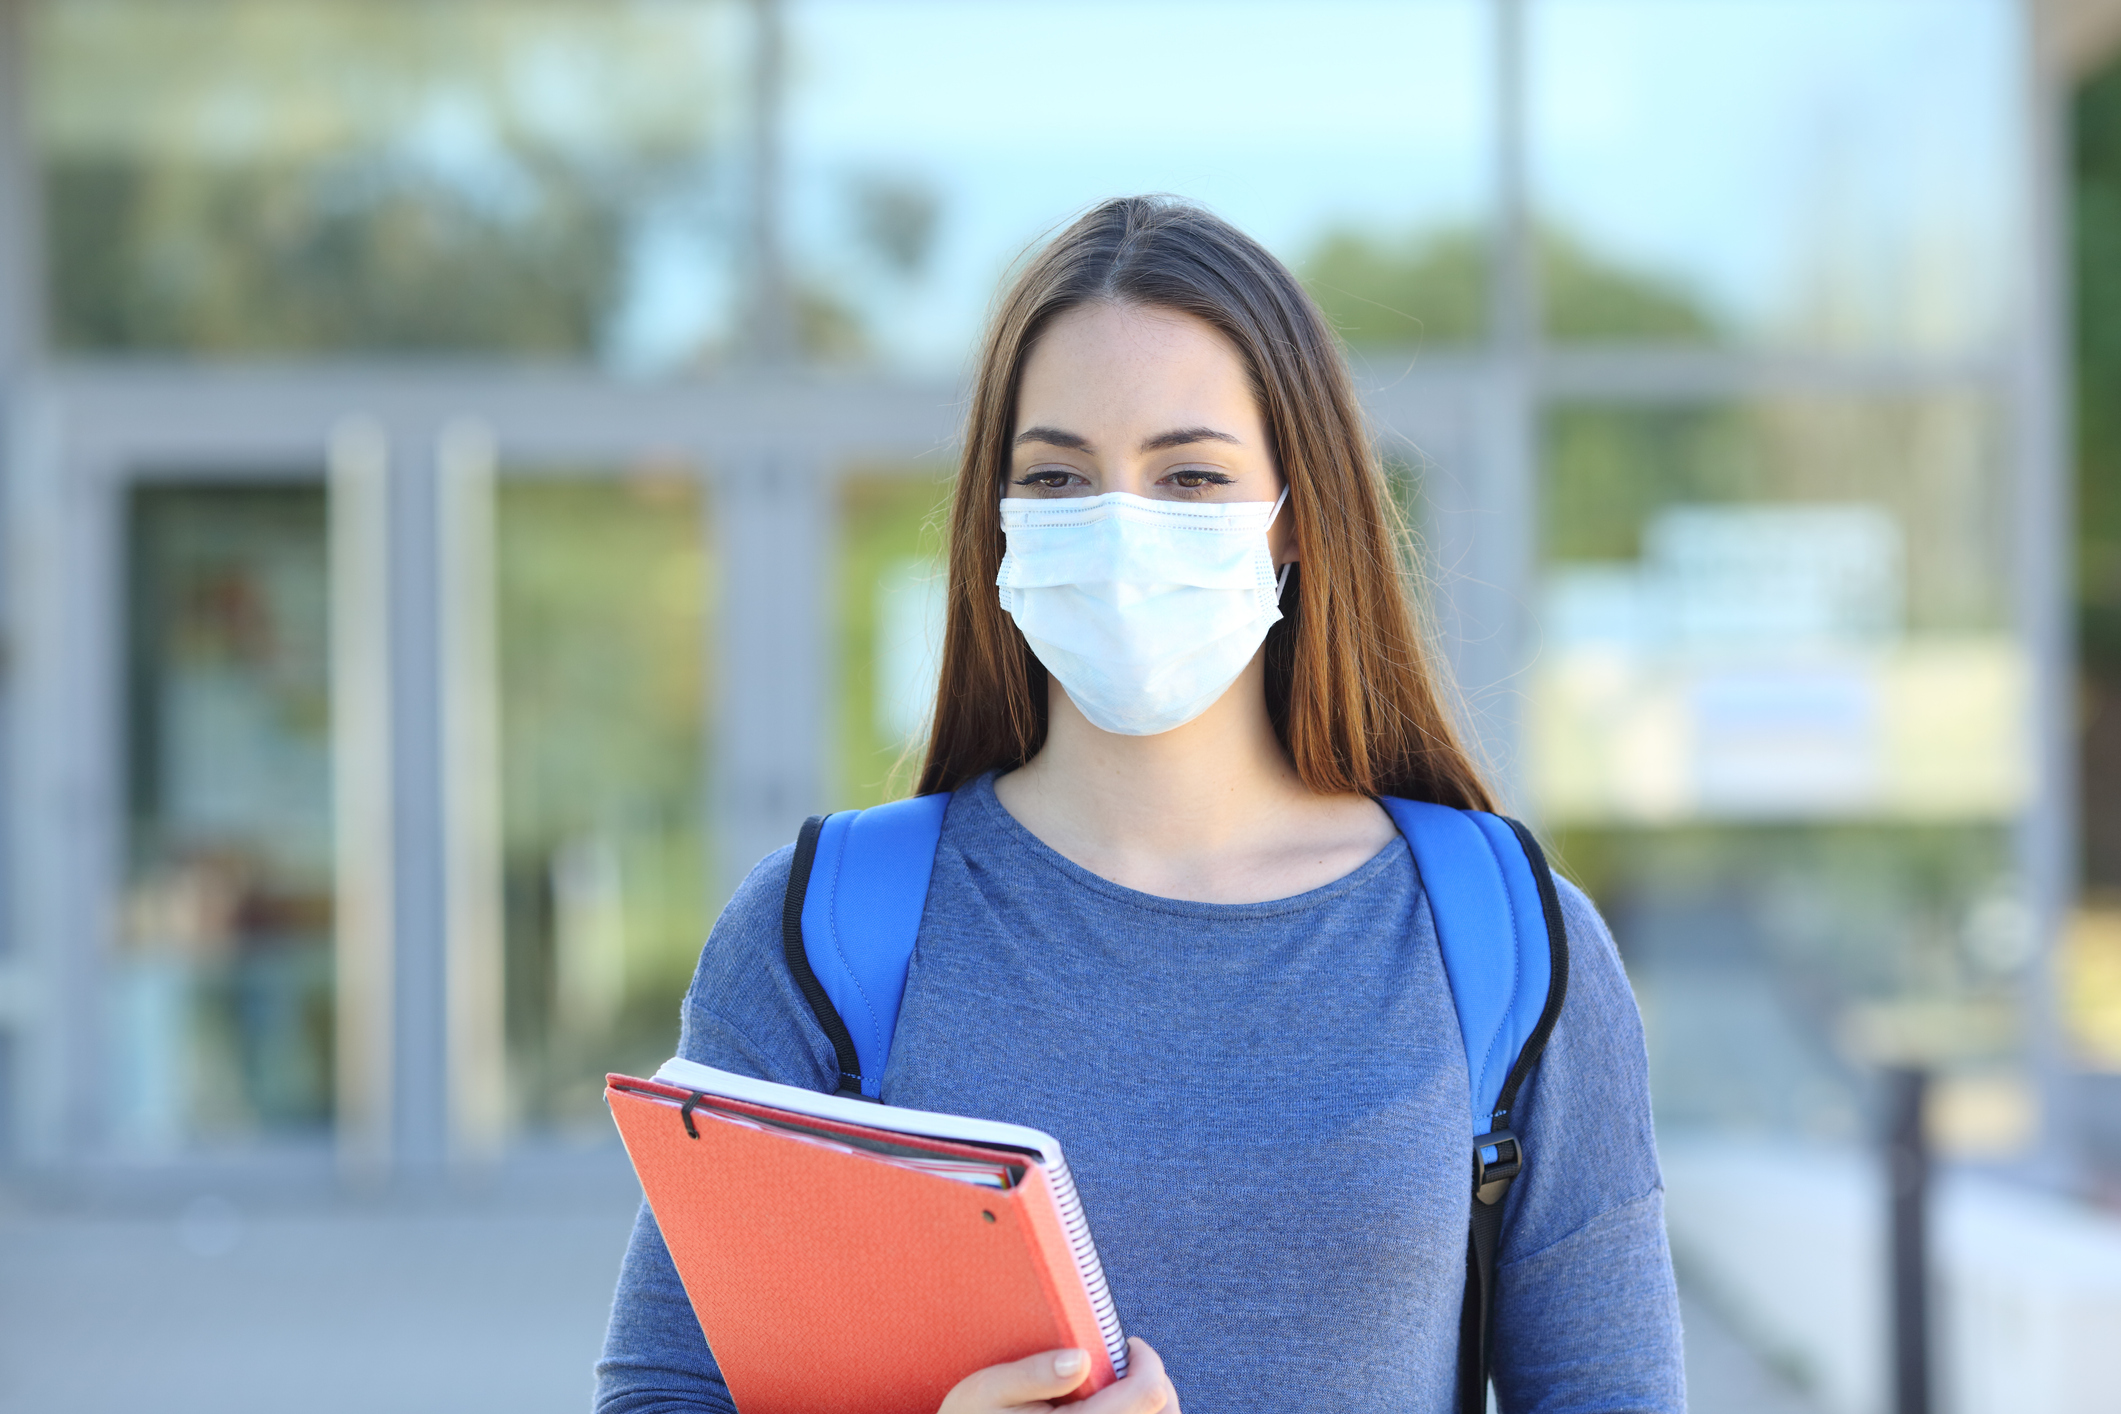 Student wearing a mask on campus. Image credit: iStock